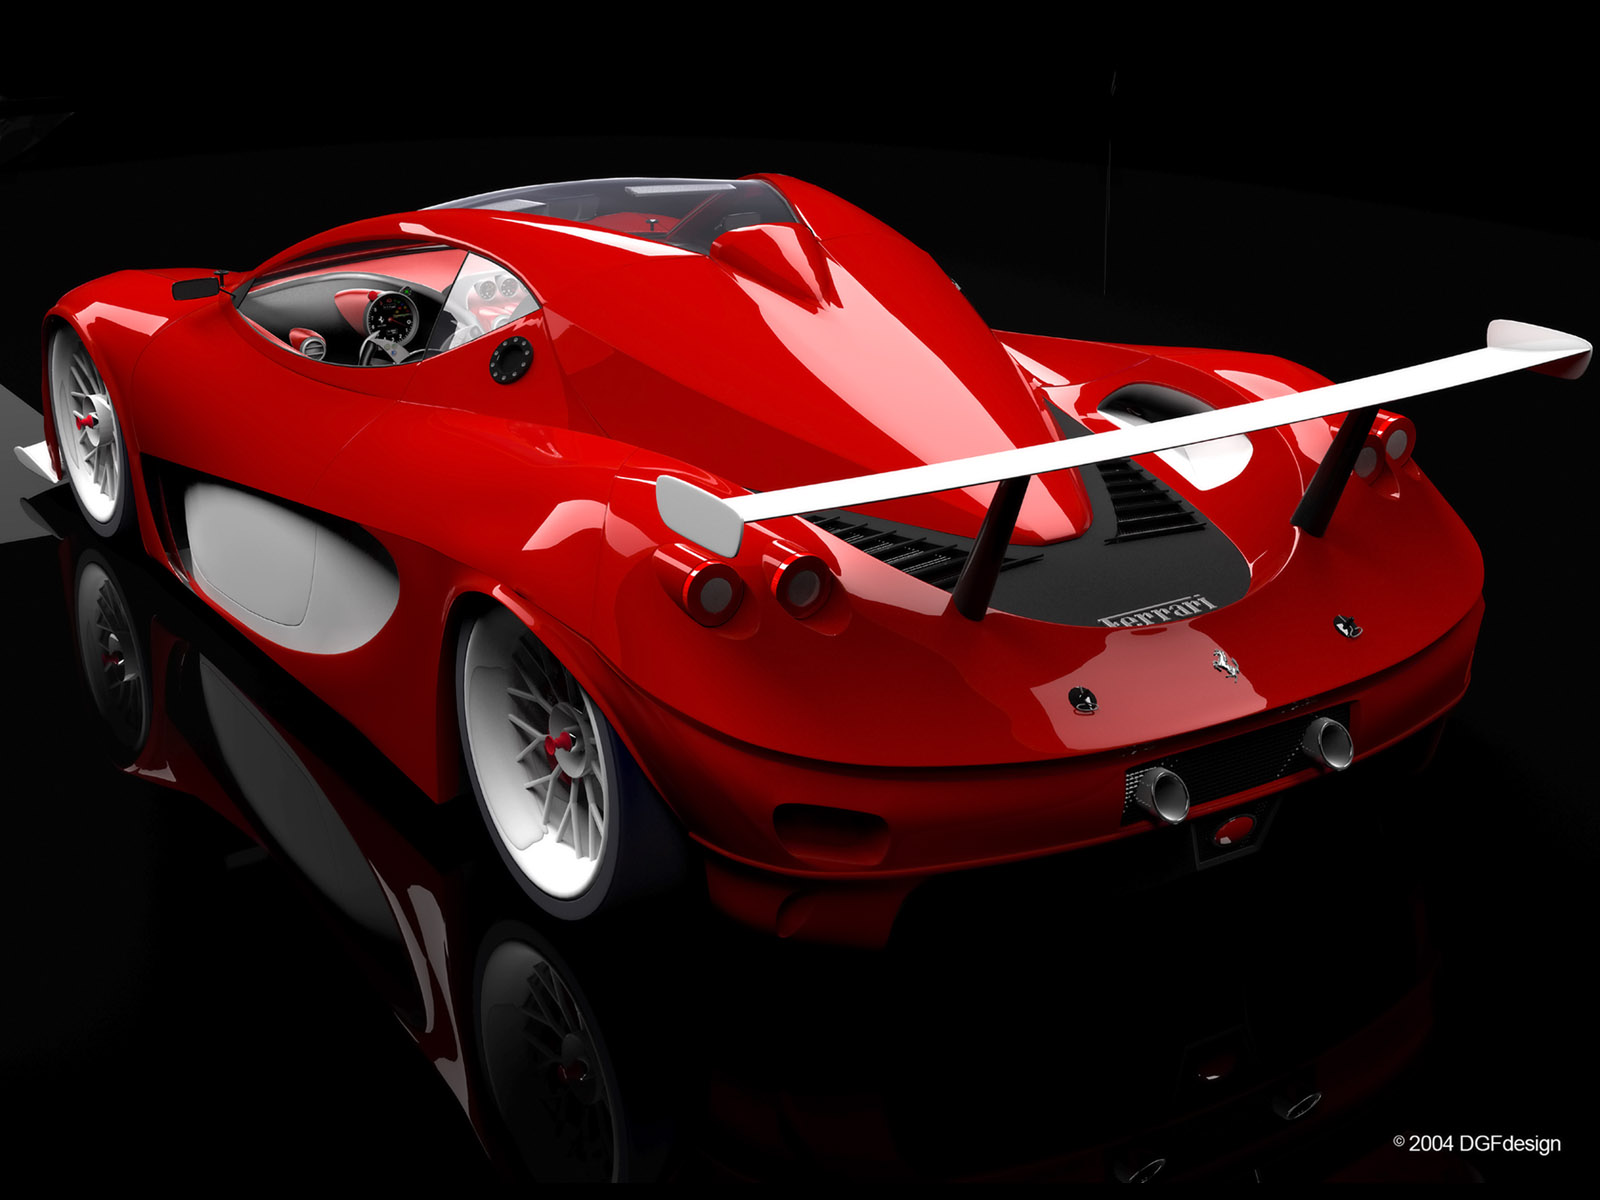 ... Ferrari Car HD Wallpaper For IPhone